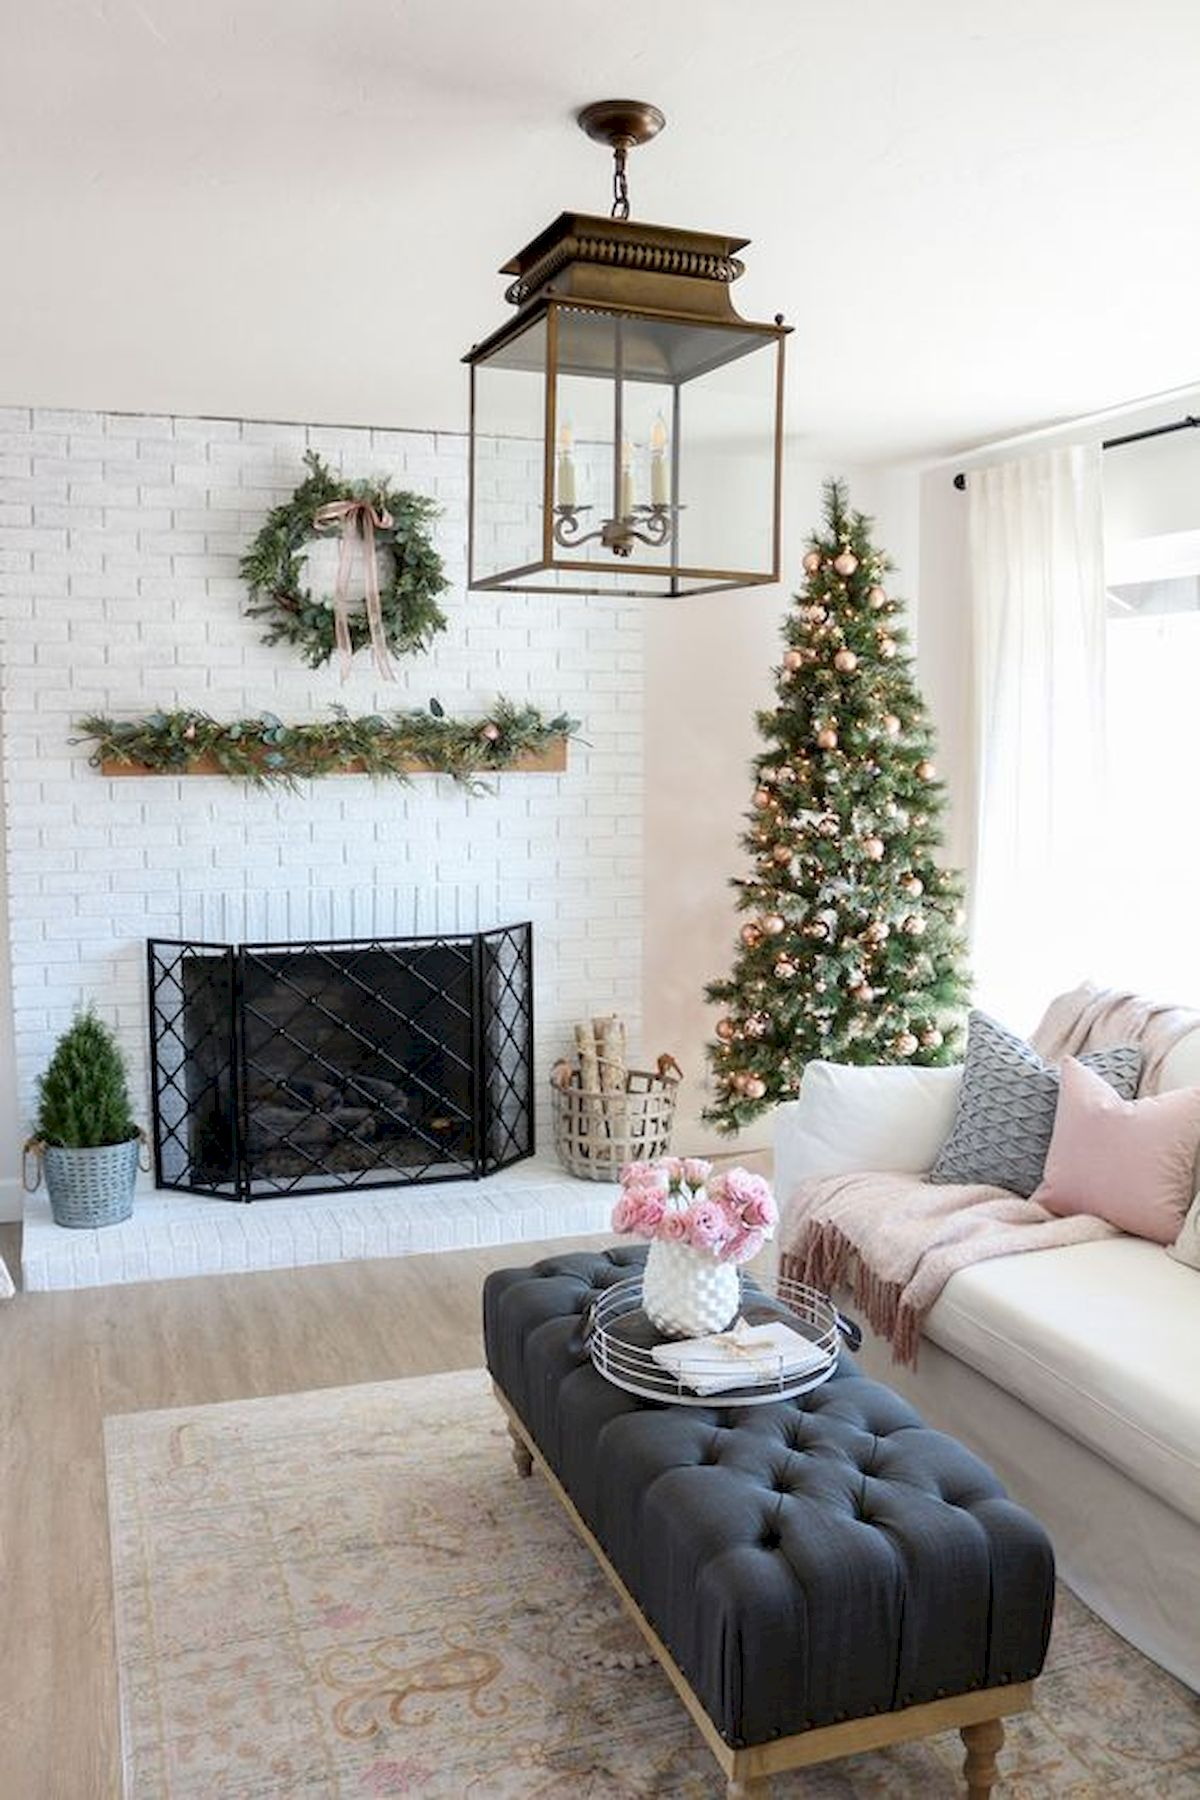 33 Gorgeous Farmhouse Fireplace Decor Ideas And Design 25 33decor